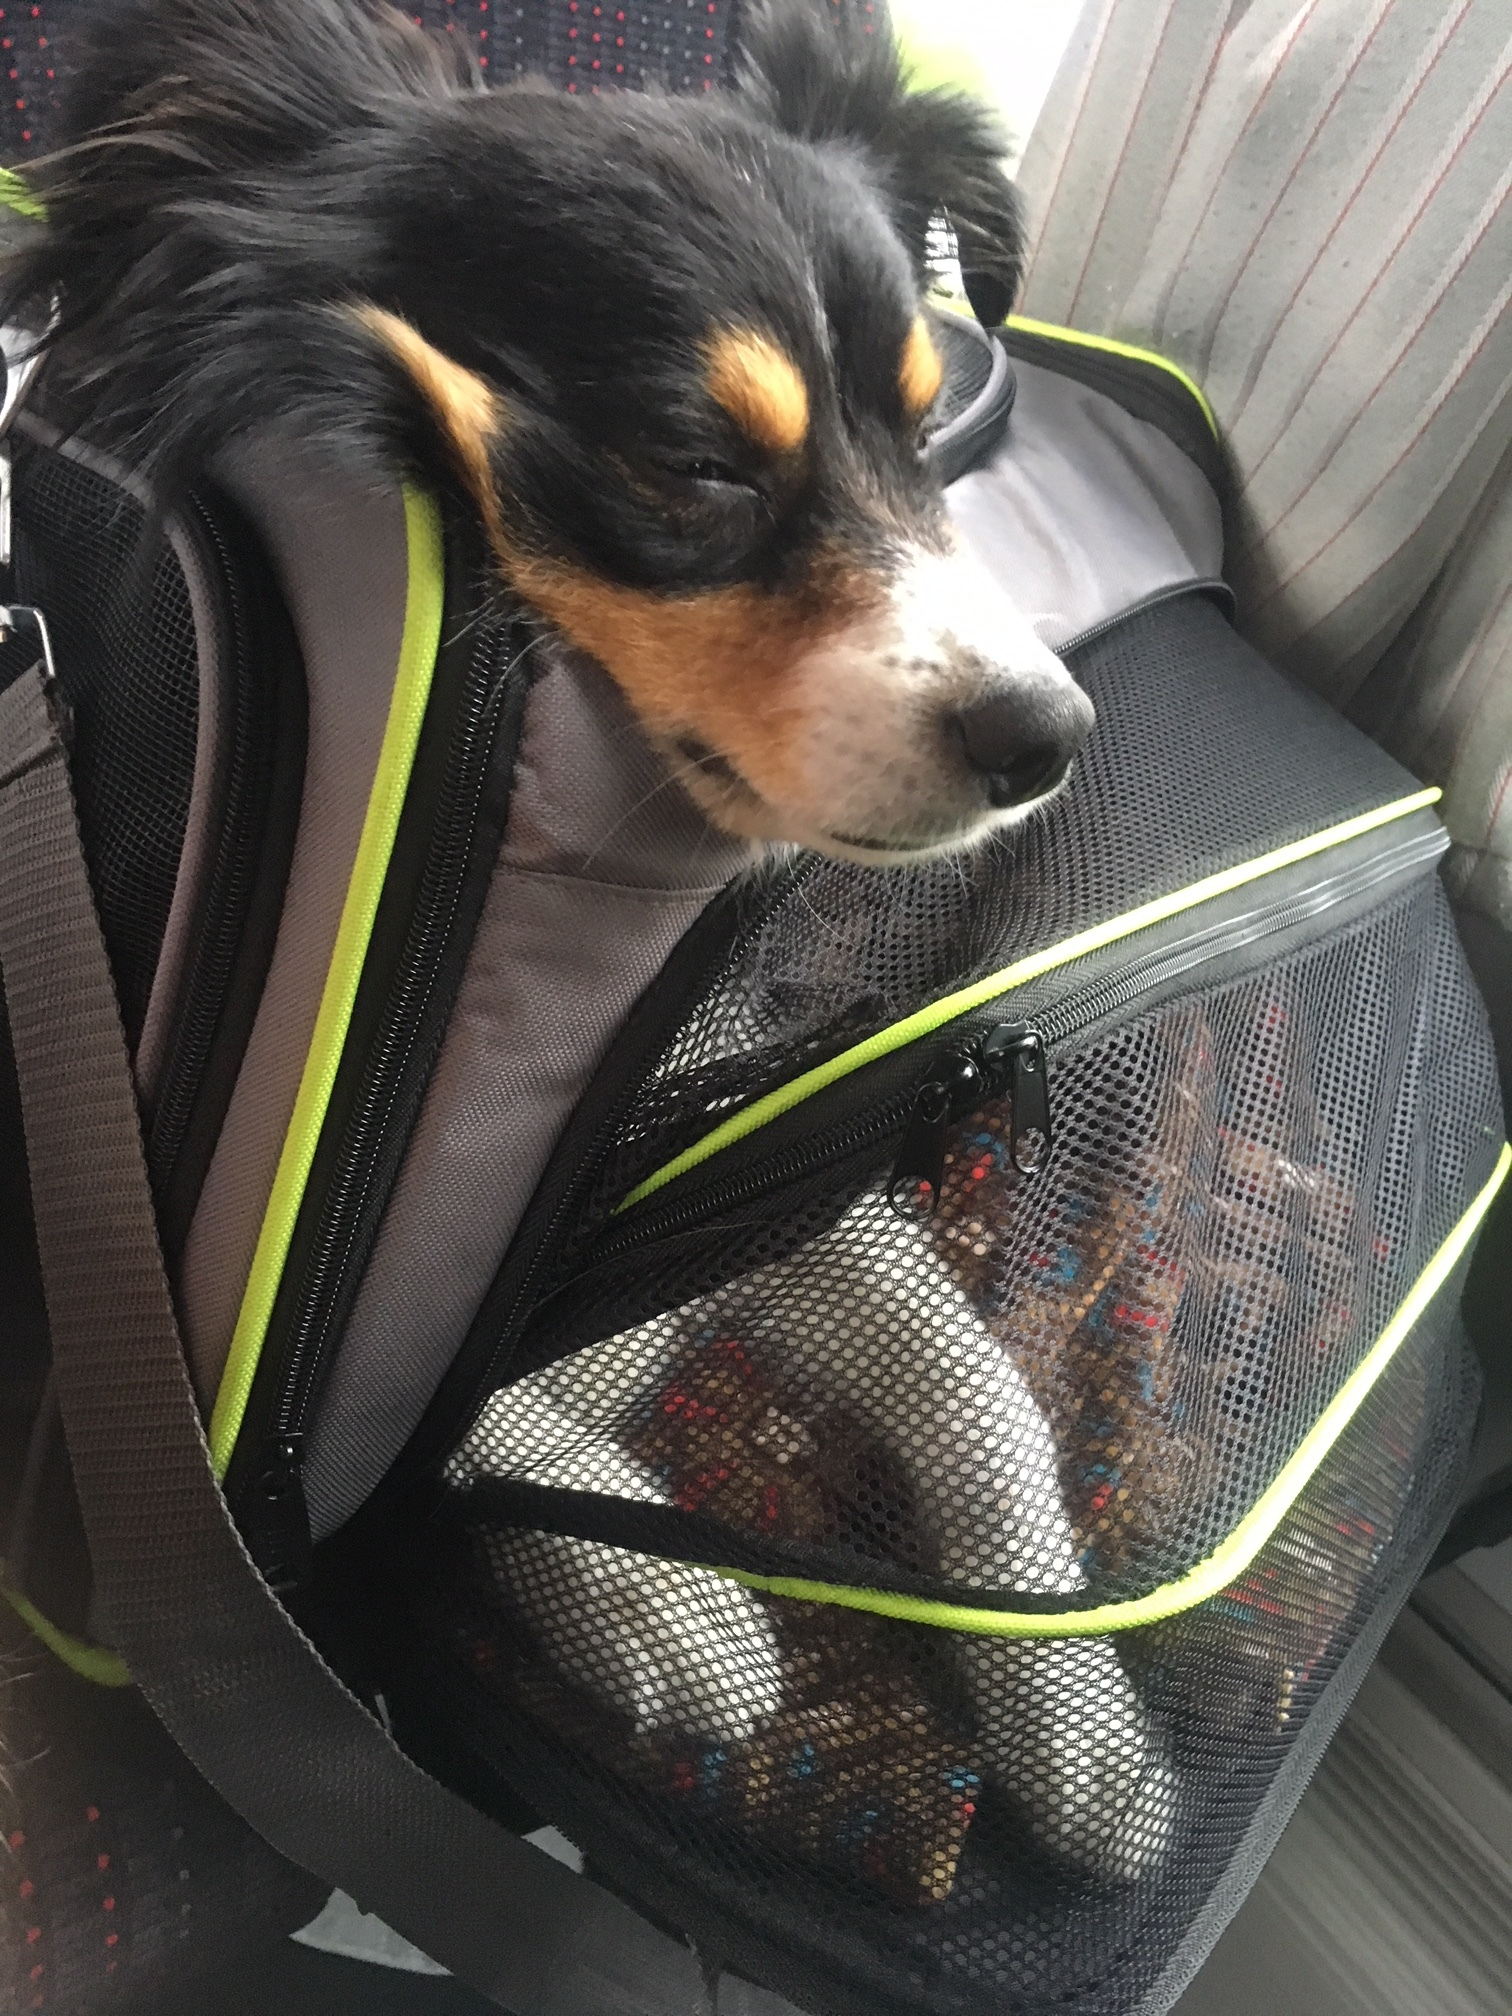 Monroe in his pet carrier on the bus to the airport